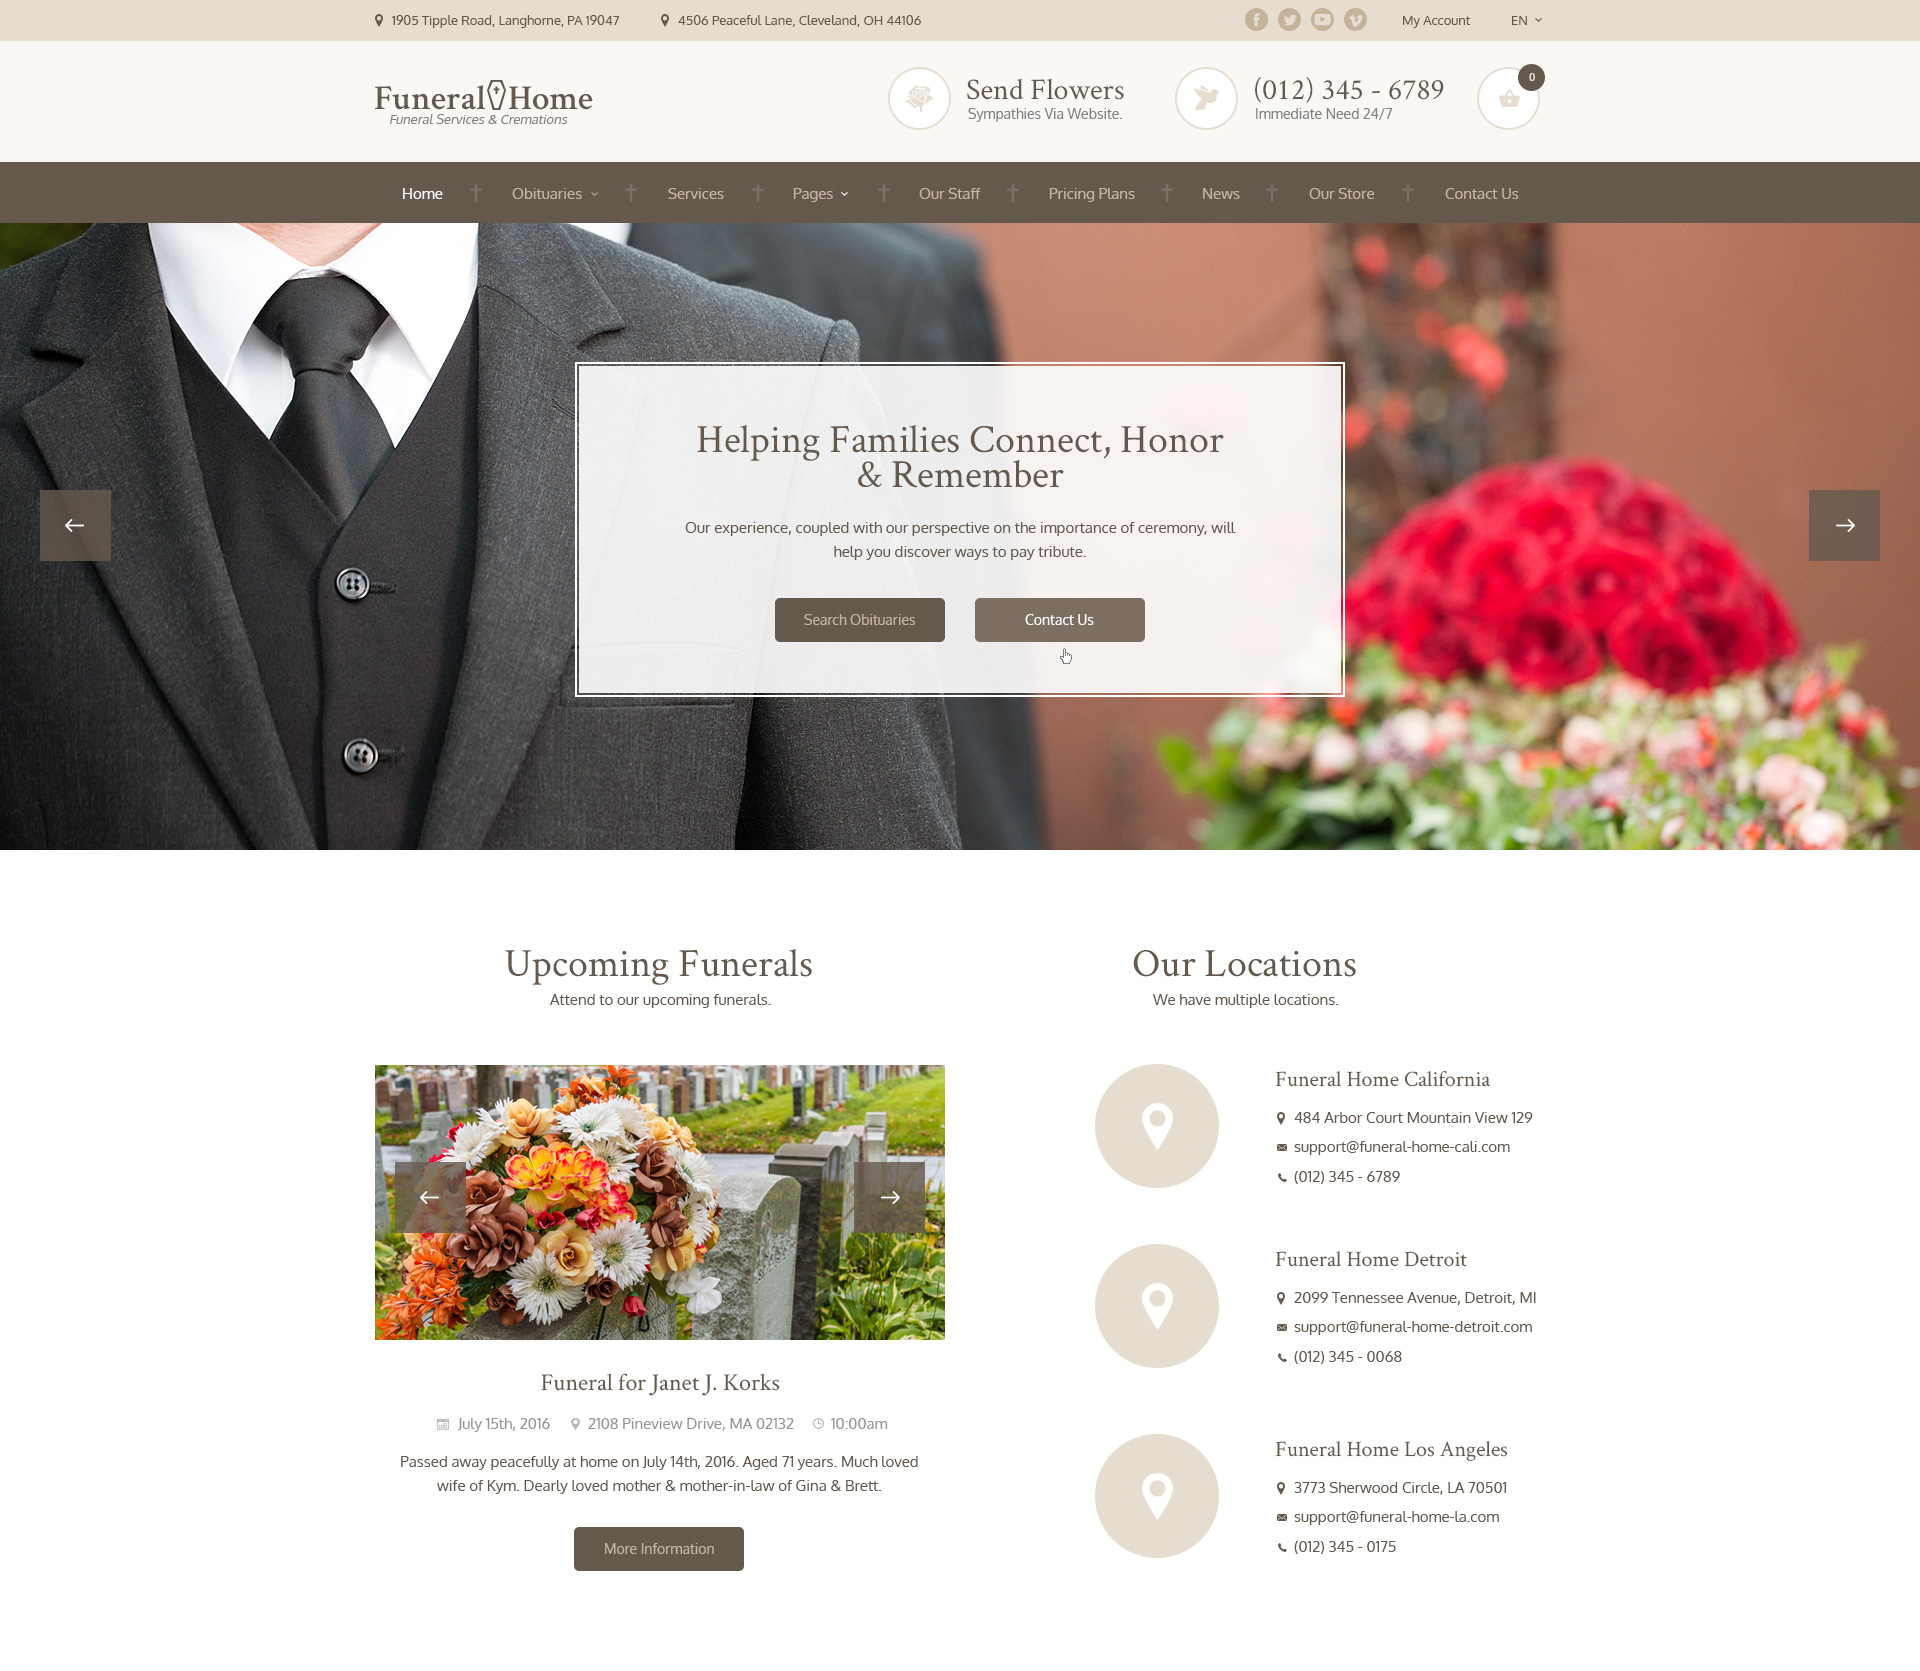 Tags:FuneralNet Custom Funeral Home Website Design Obituaries,Home Ideal Funeral  Parlor,